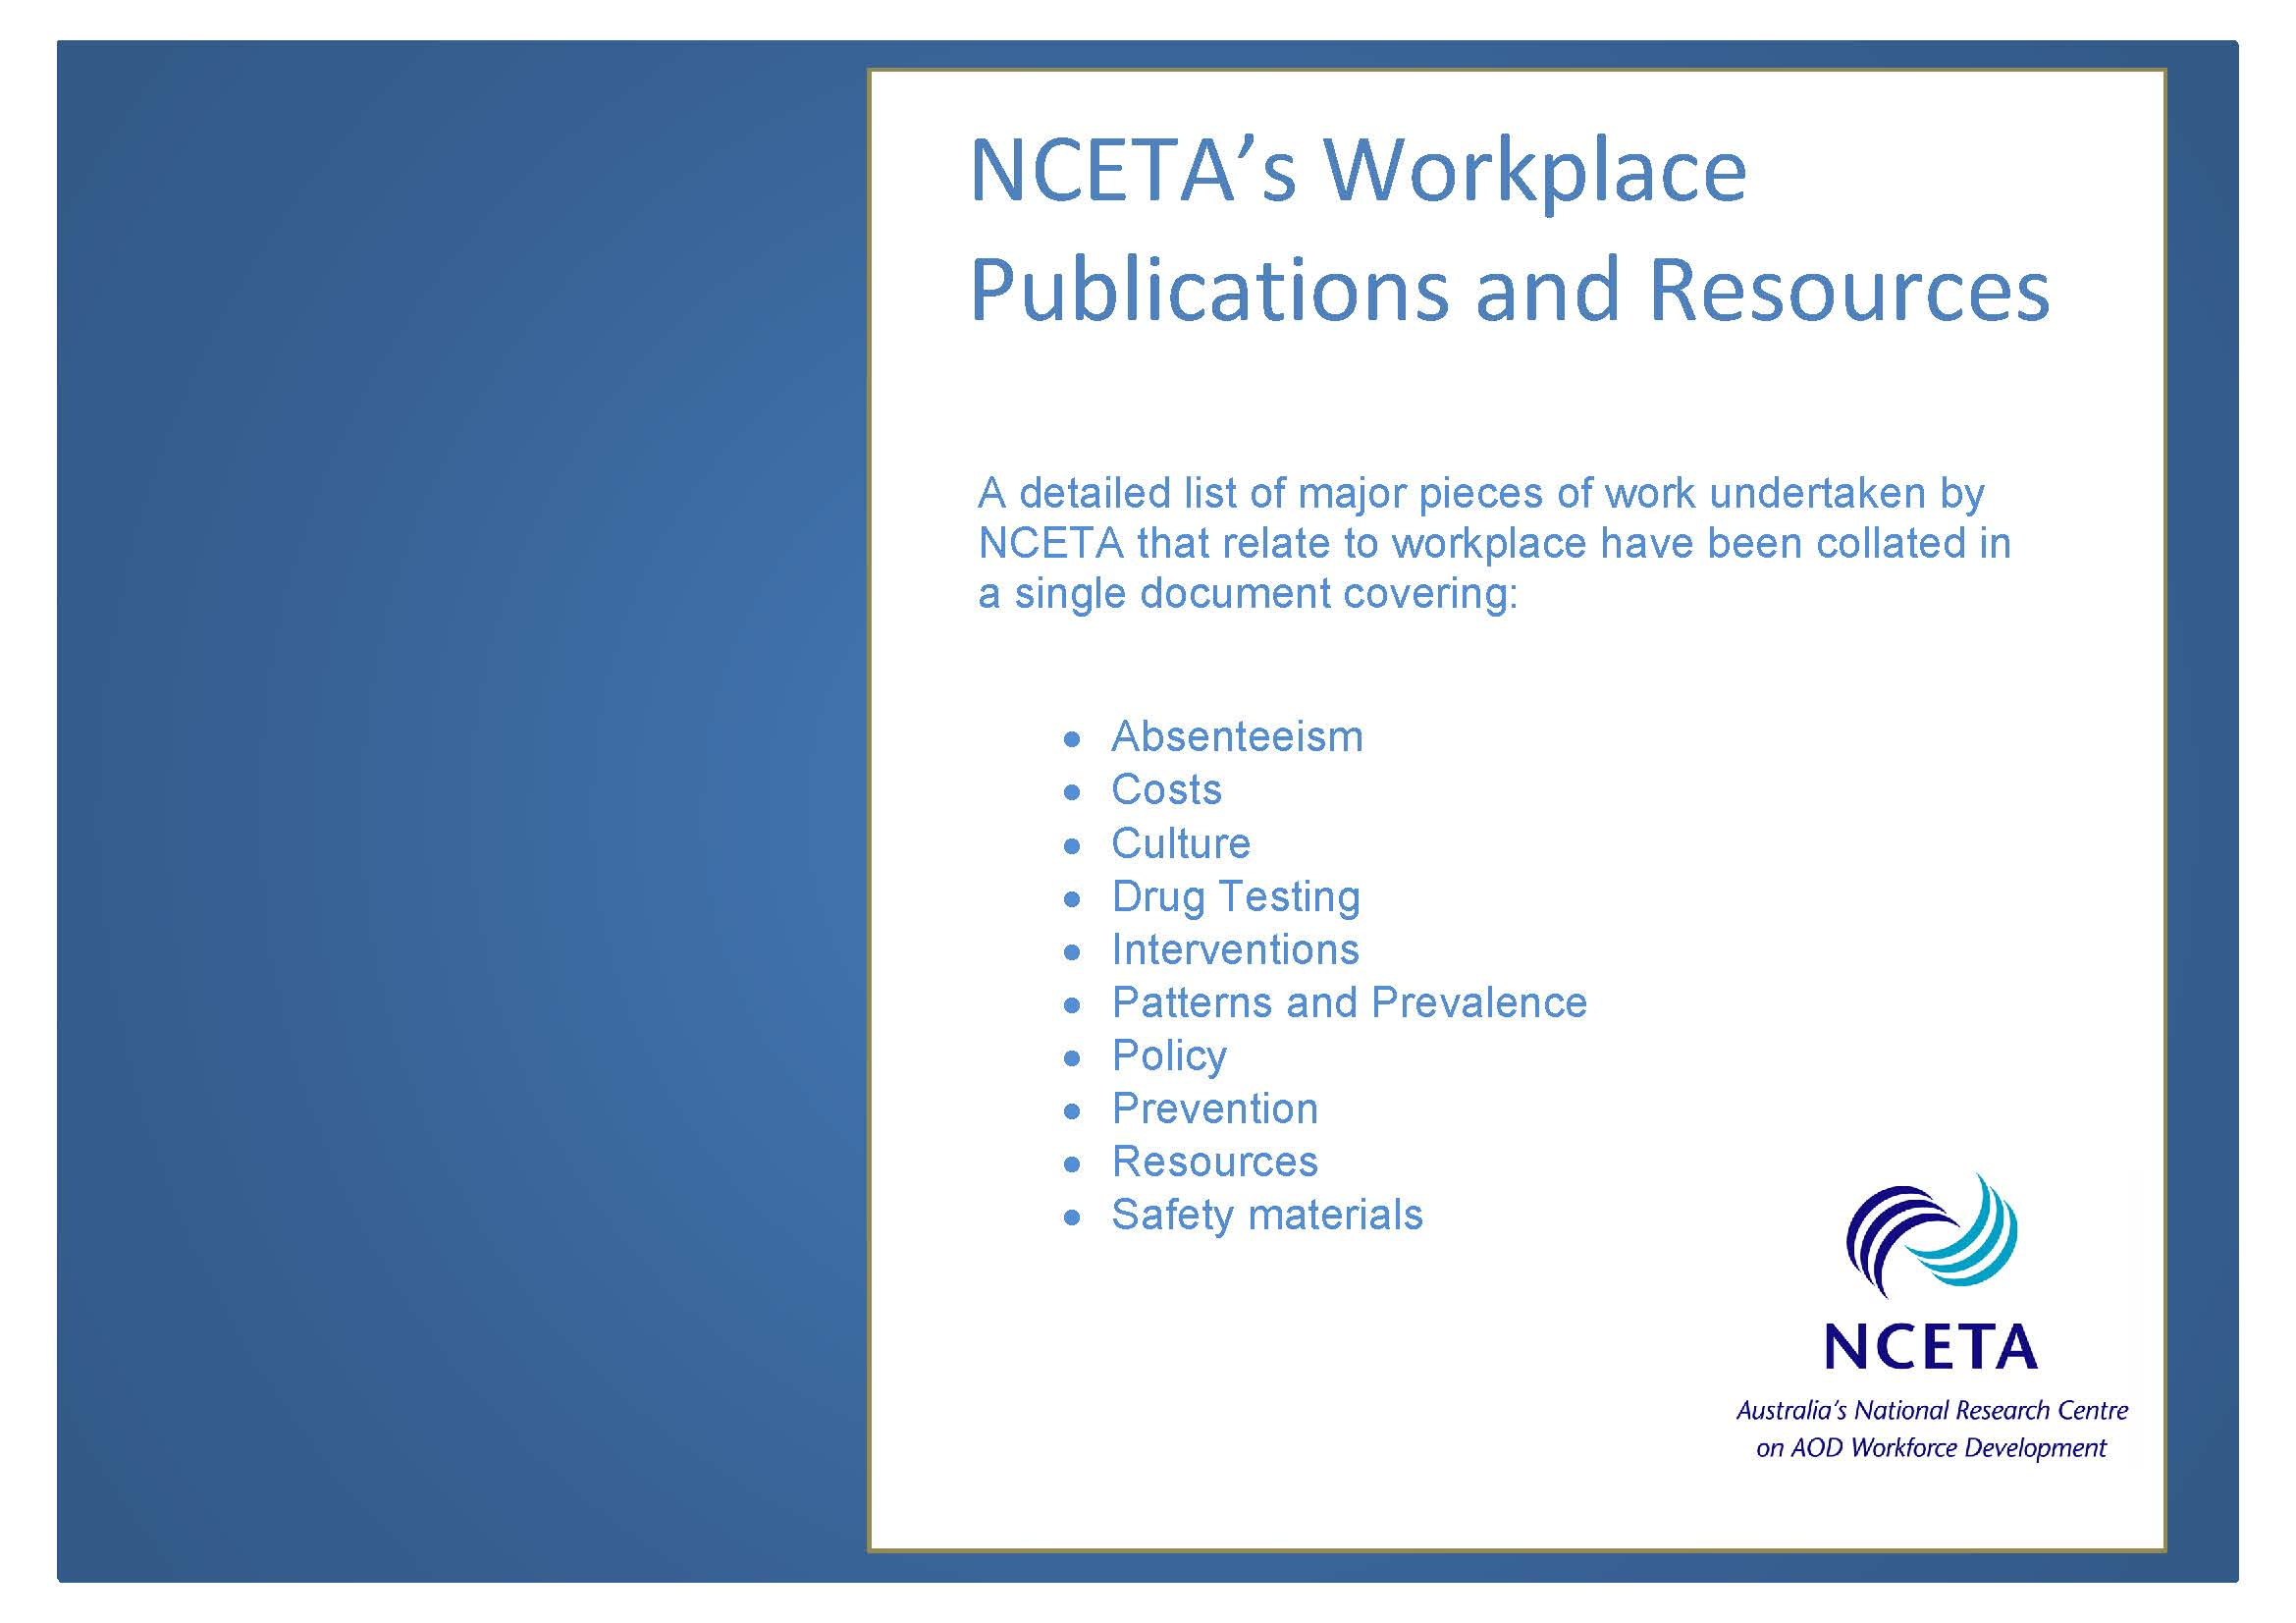 Pages_from_NCETA_Workplace_Publications_2005-2020.jpg